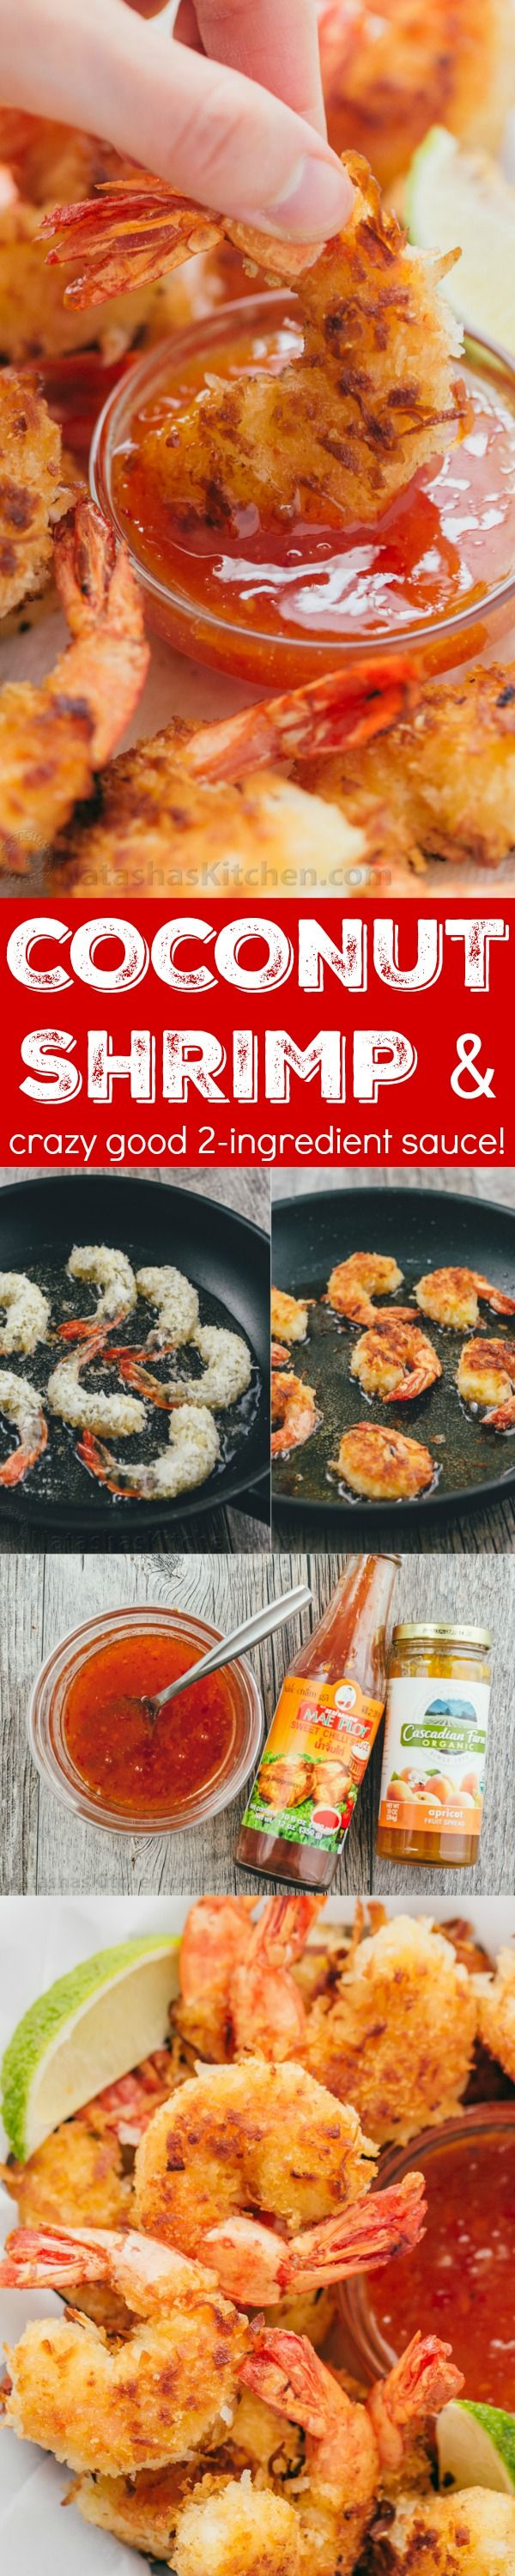 Oh the yumminess: Coconut Shrimp and Easy Dipping Sauce - Natashas K...